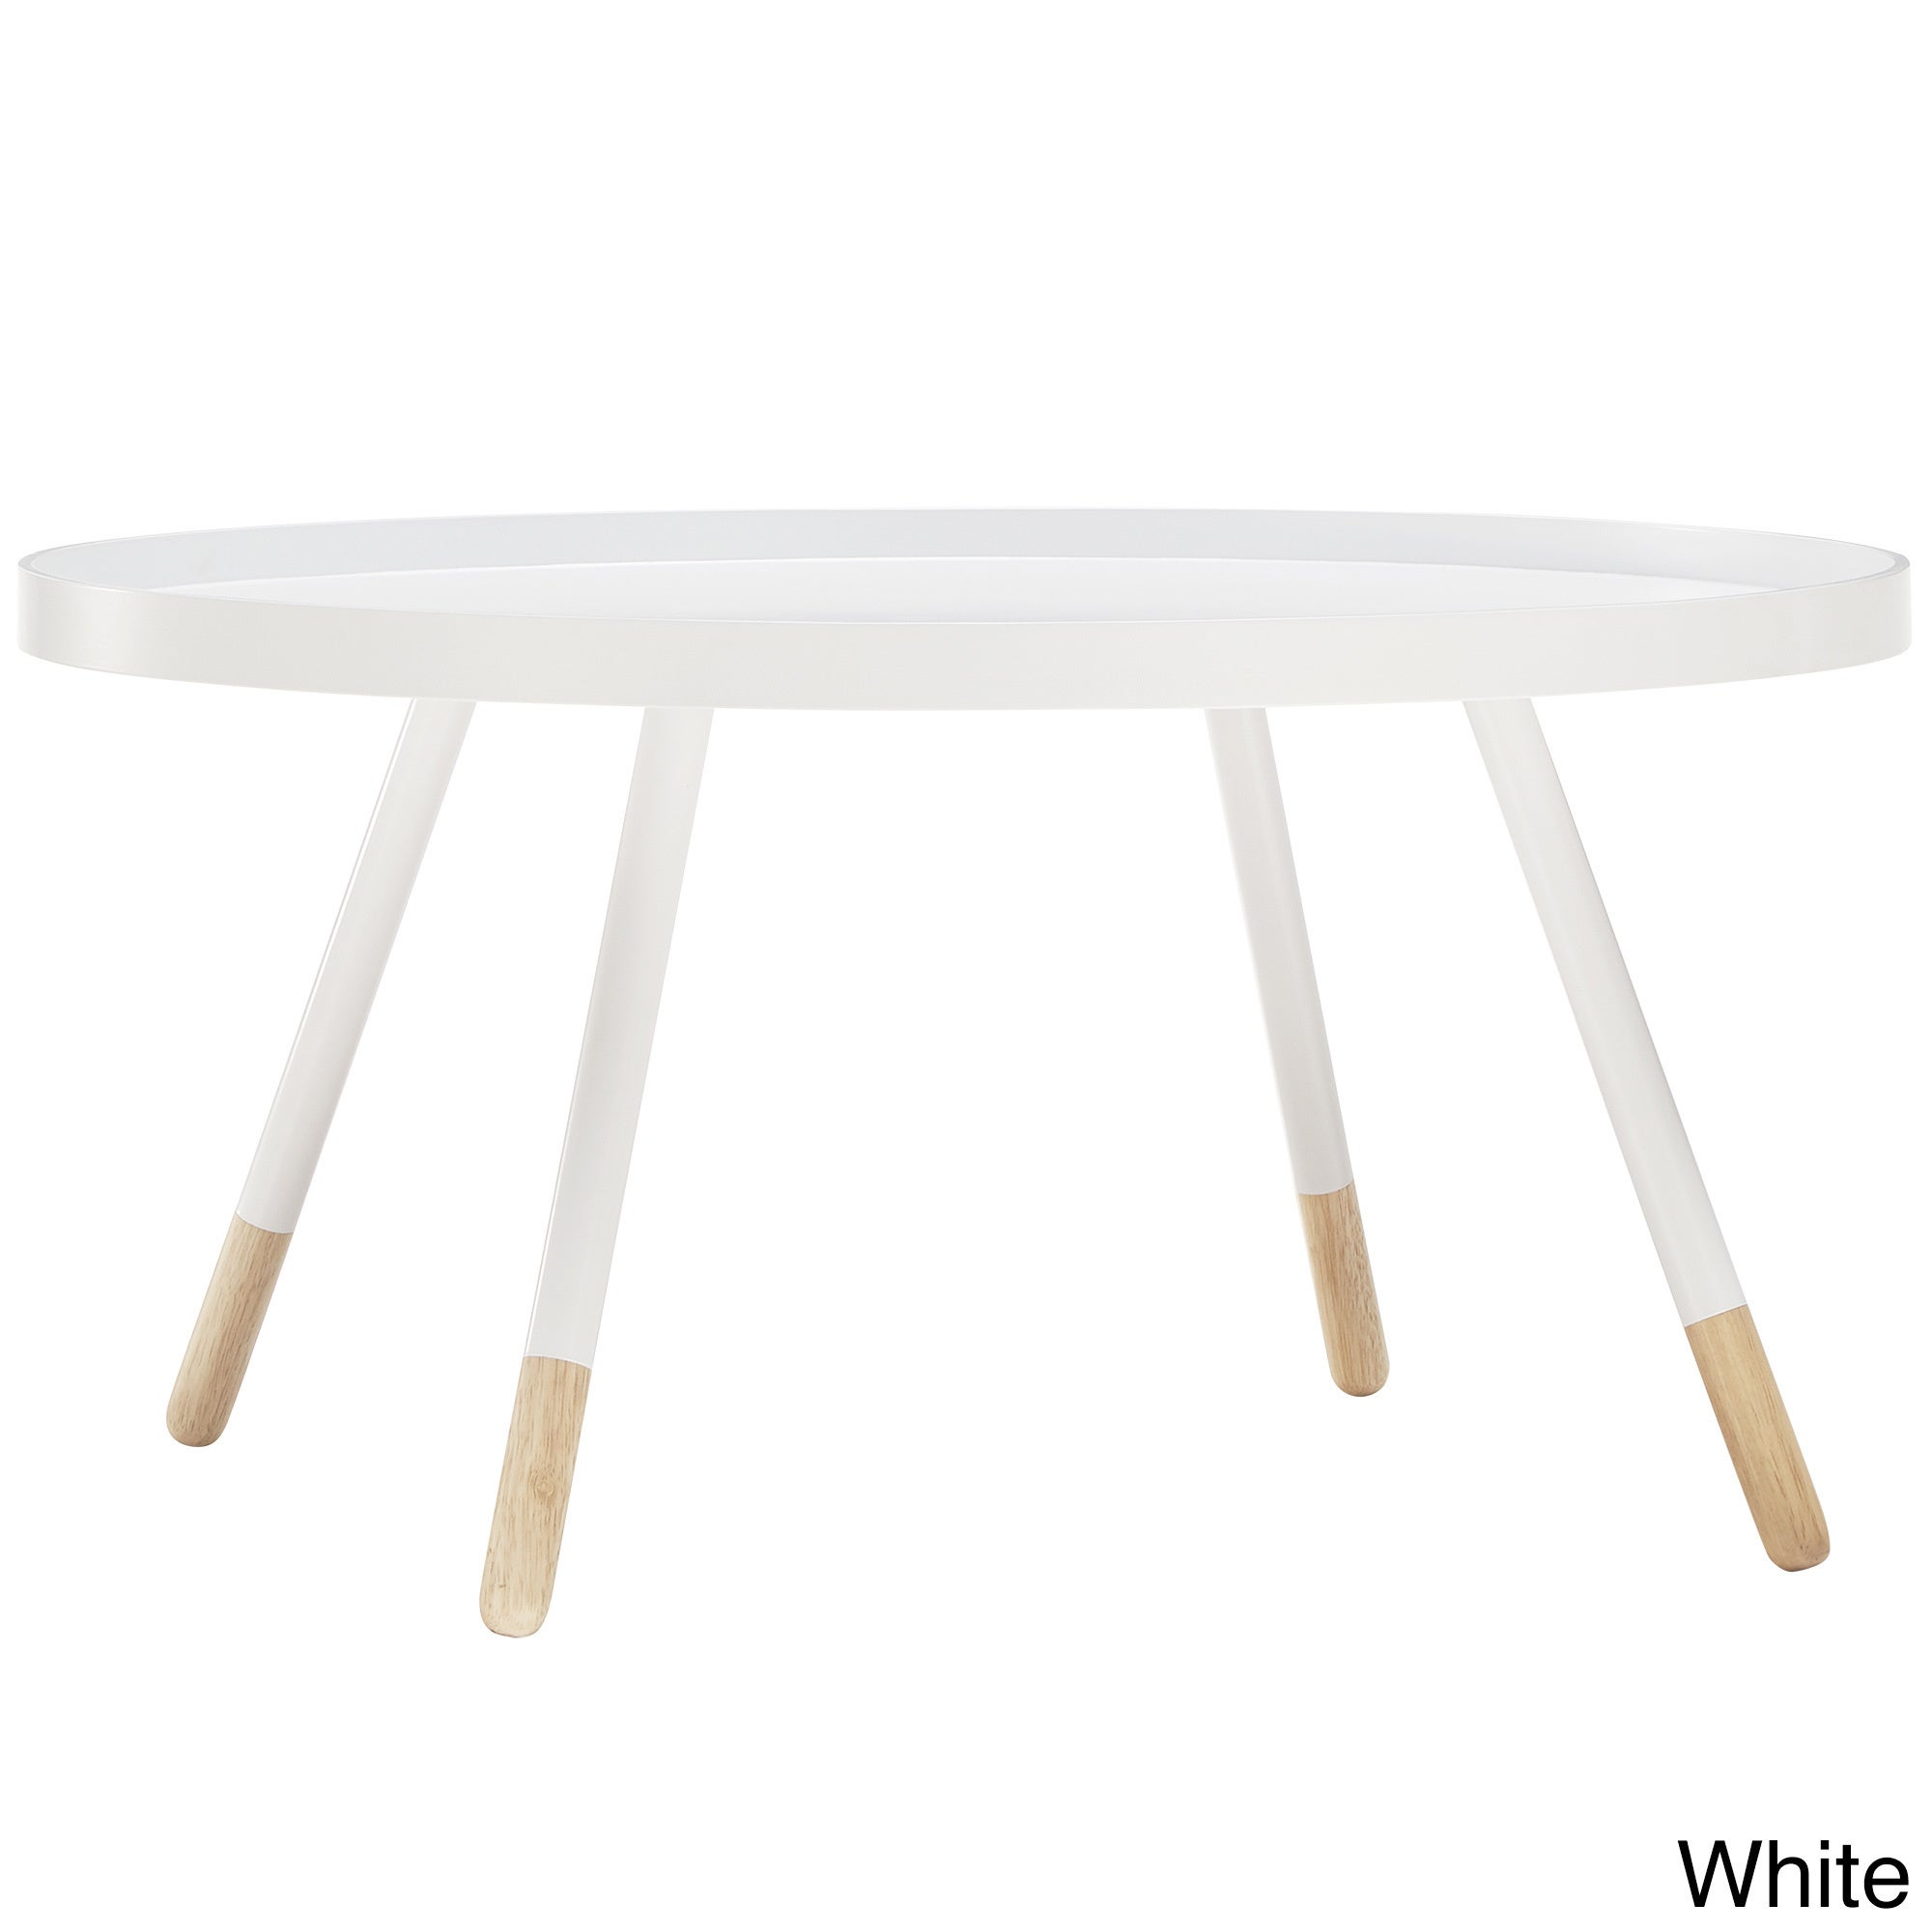 Marcella-Paint-dipped-Round-Spindle-Tray-Top-Coffee-